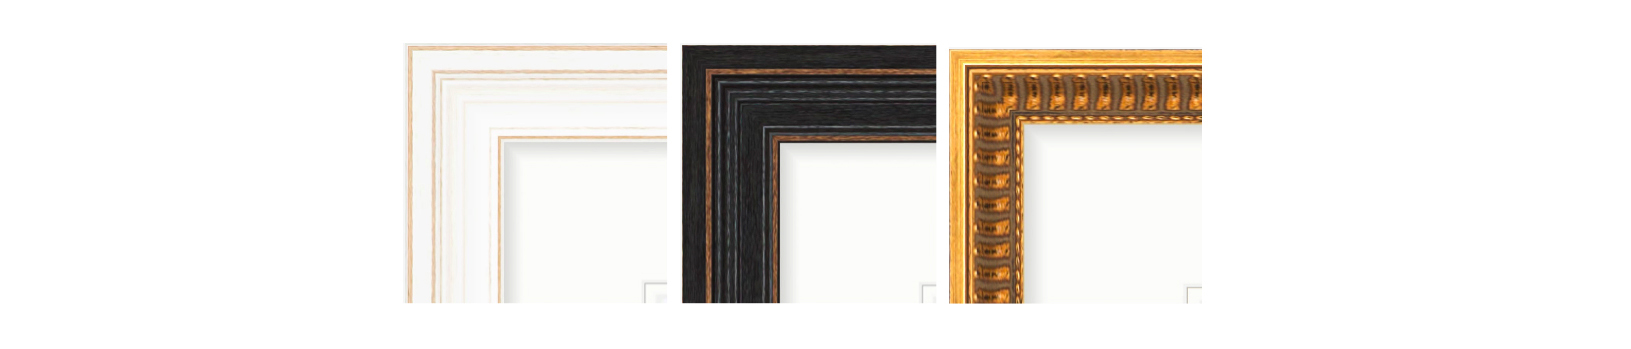 picture frames in white, black and gold